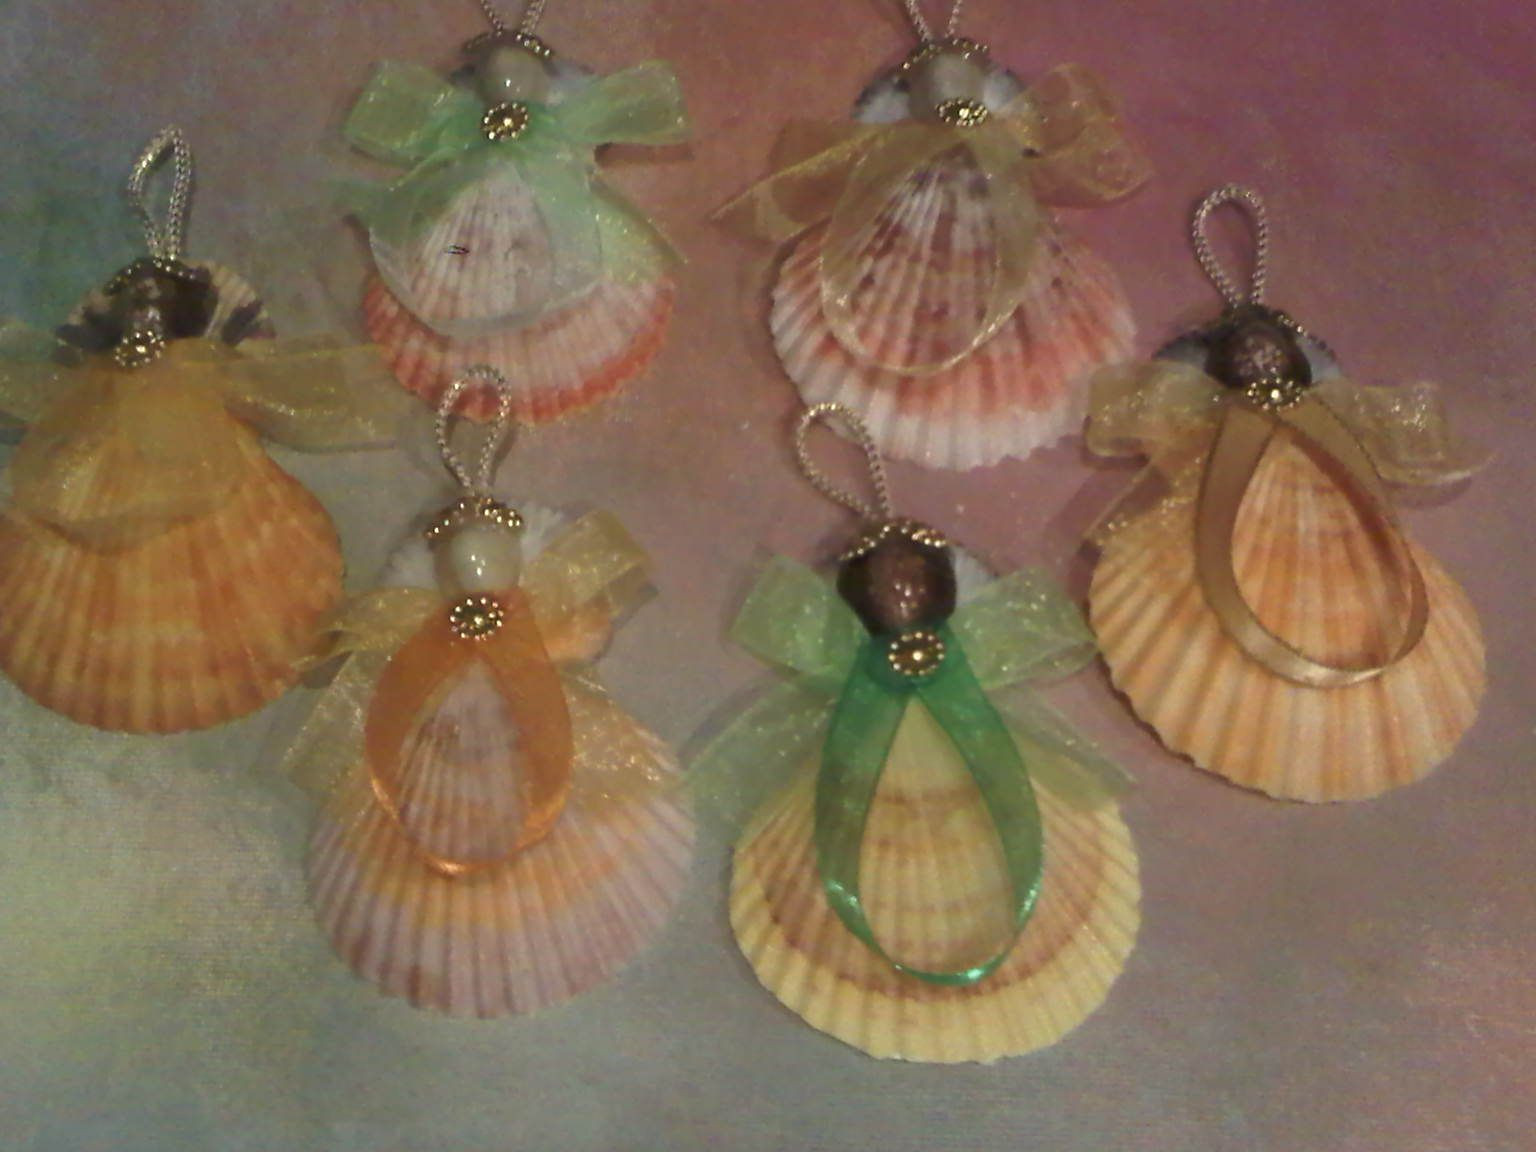 Ribbon Craft Ideas For Adults  craft ideas for adults to sell